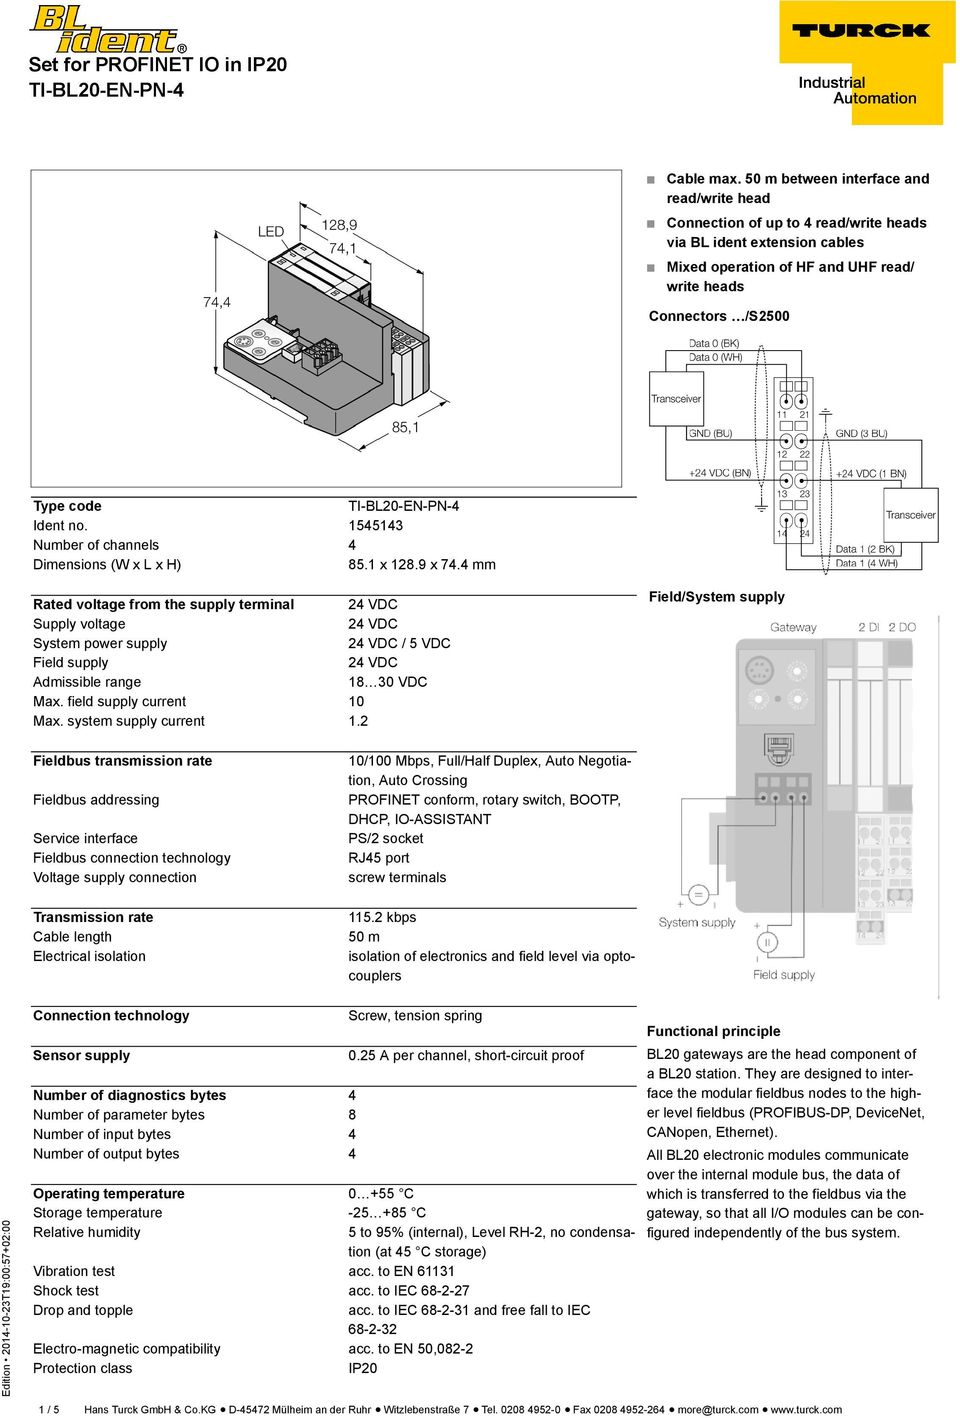 Set For Profinet Io In Ip20 Ti Bl20 En Pn 4 Pdf Wiring Diagram 1545143 Number Of Channels Dimensions W X L H 851 1289